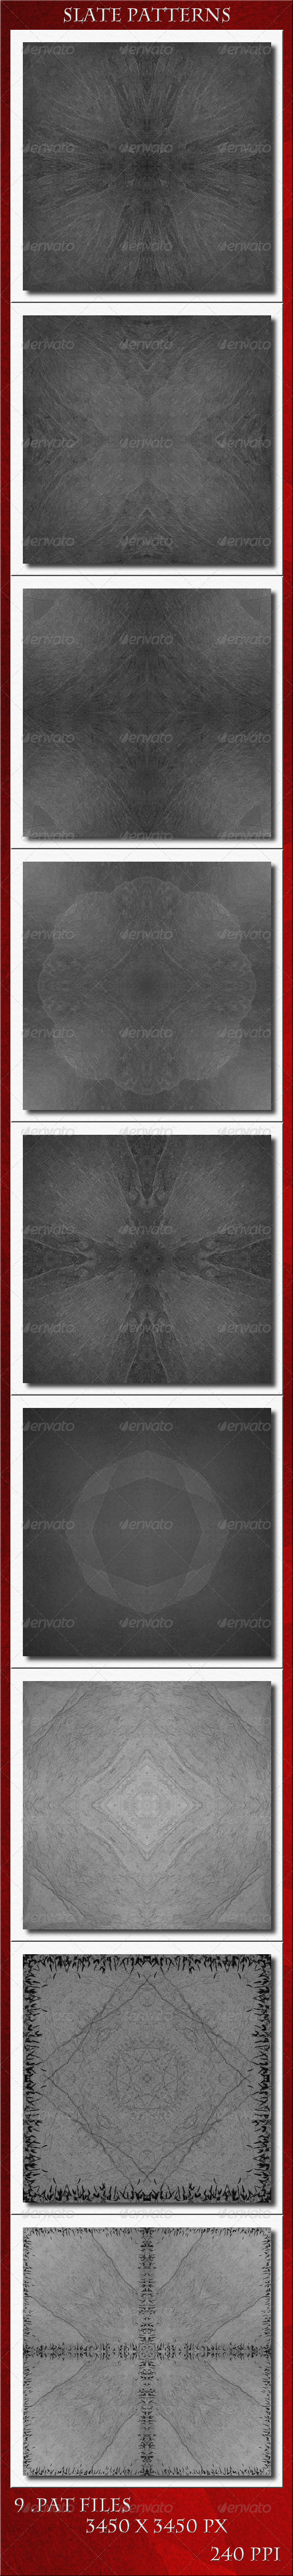 GraphicRiver Slate Patterns 5683000